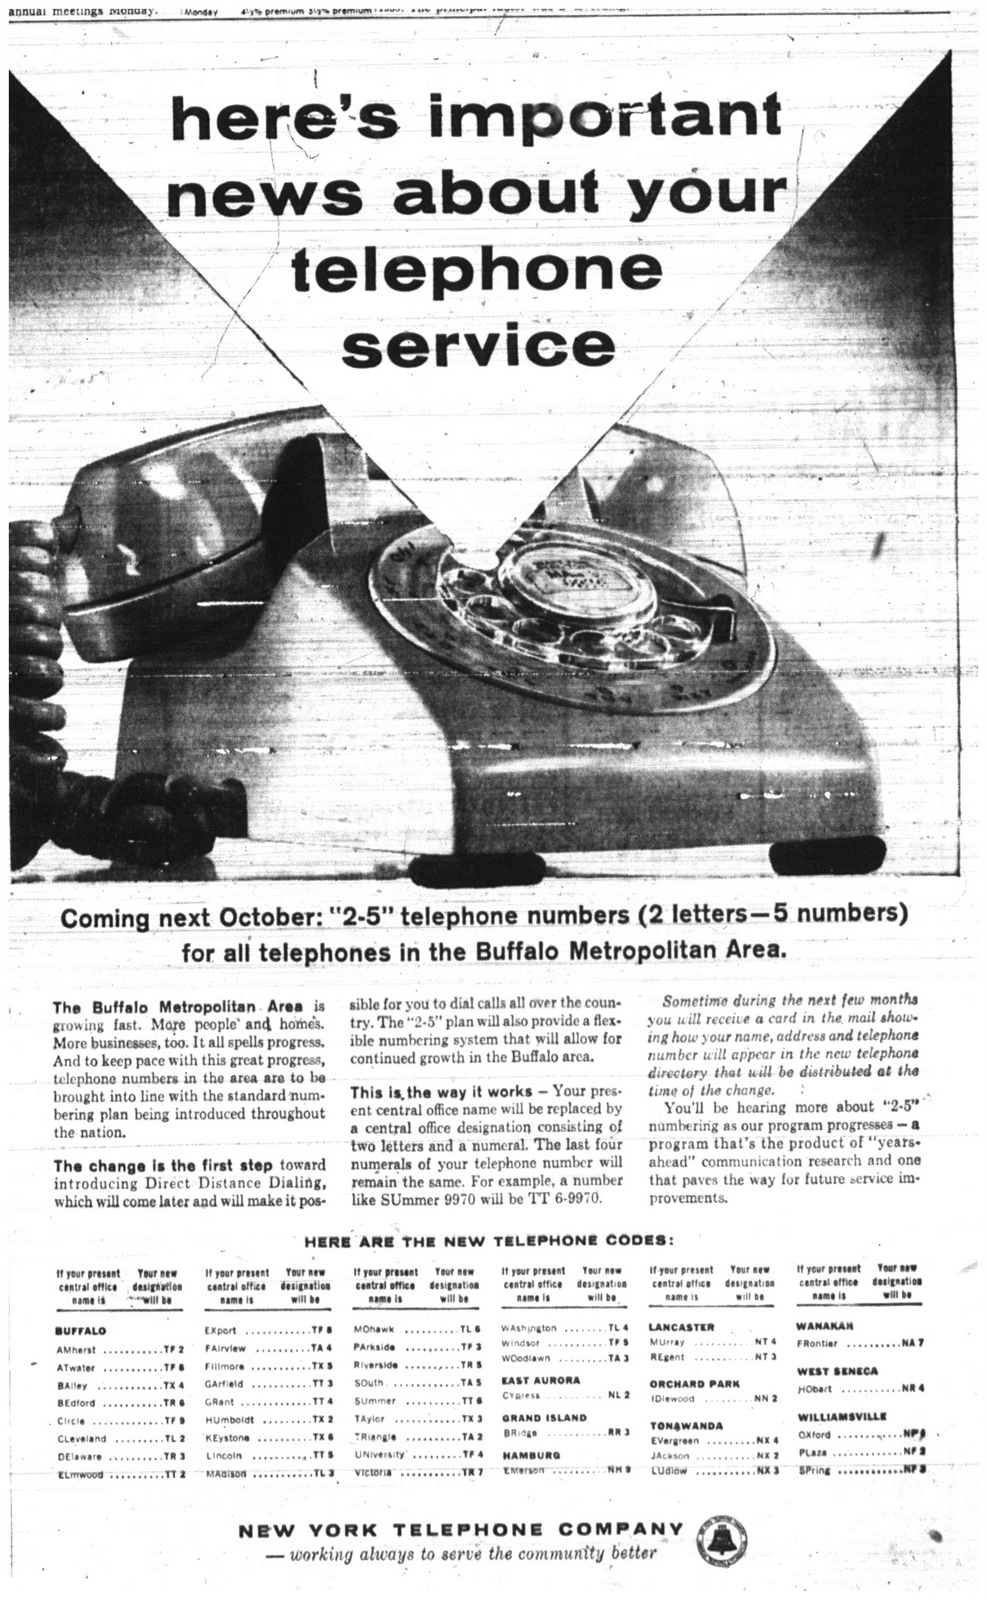 Jan  5, 1960: Buffalo phone numbers changing to two letters